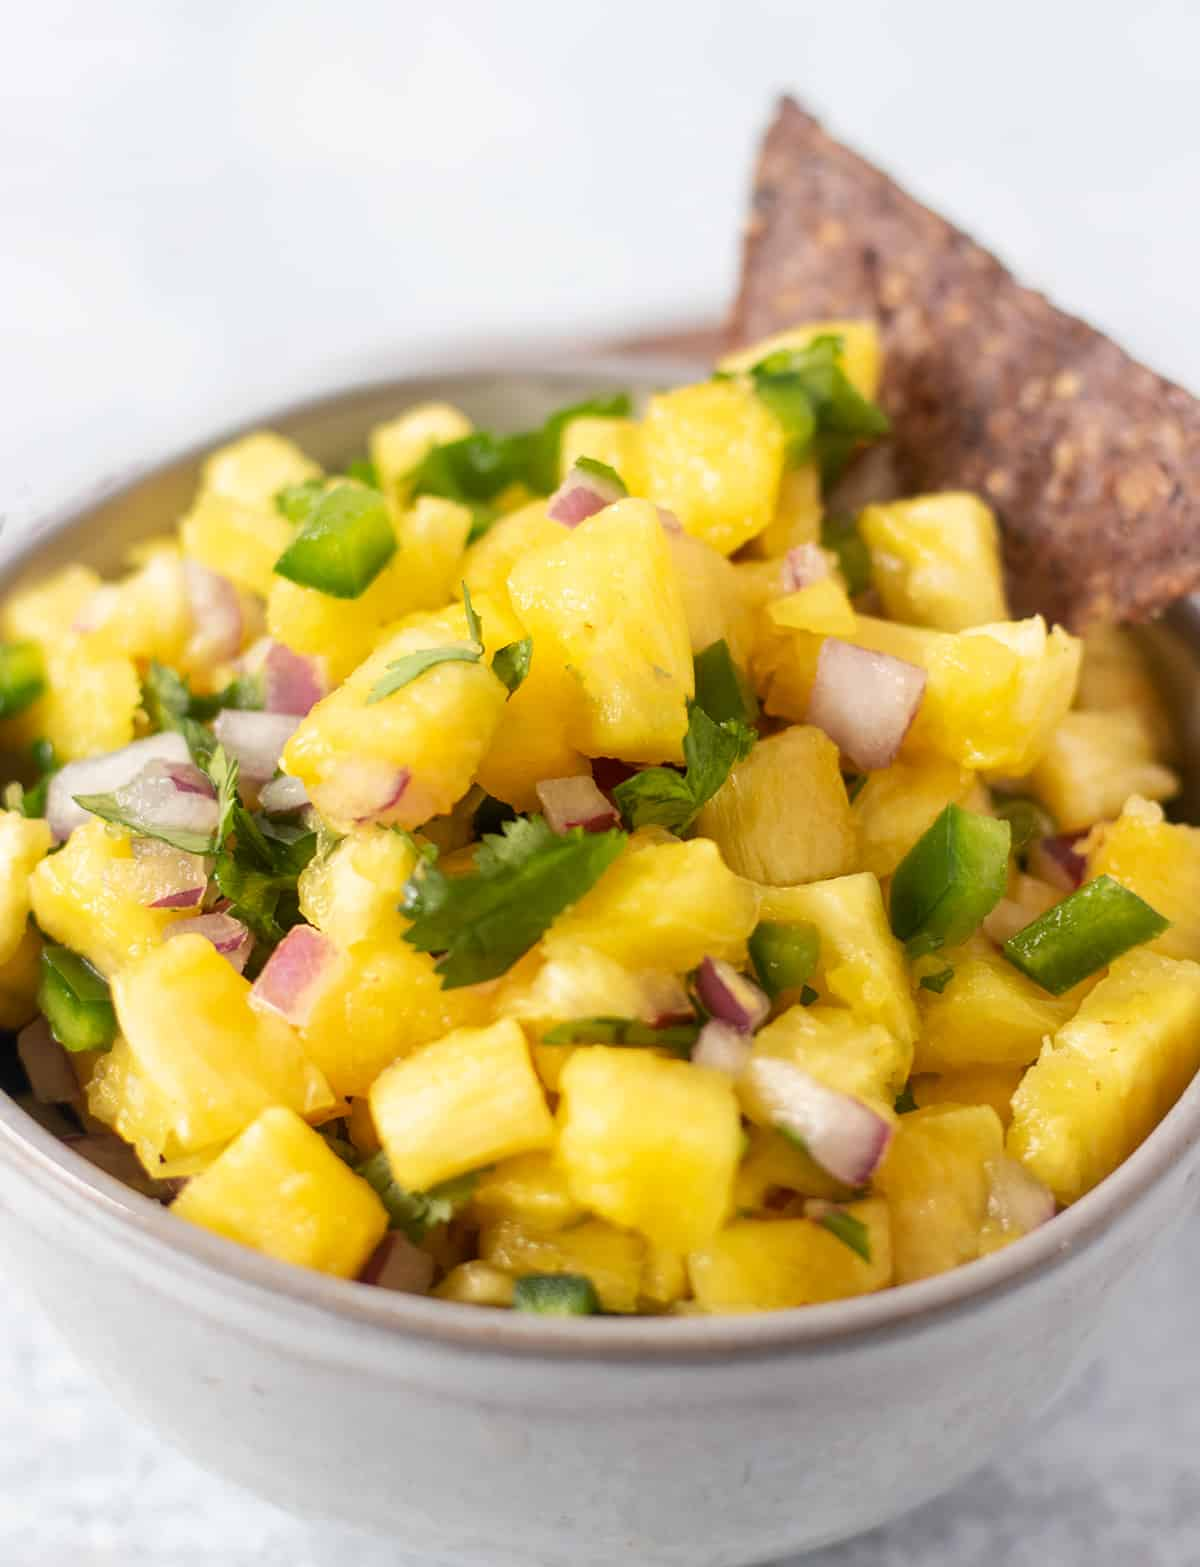 pineapple salsa in a grey bowl with a black bean tortilla chip in the bowl for dipping.